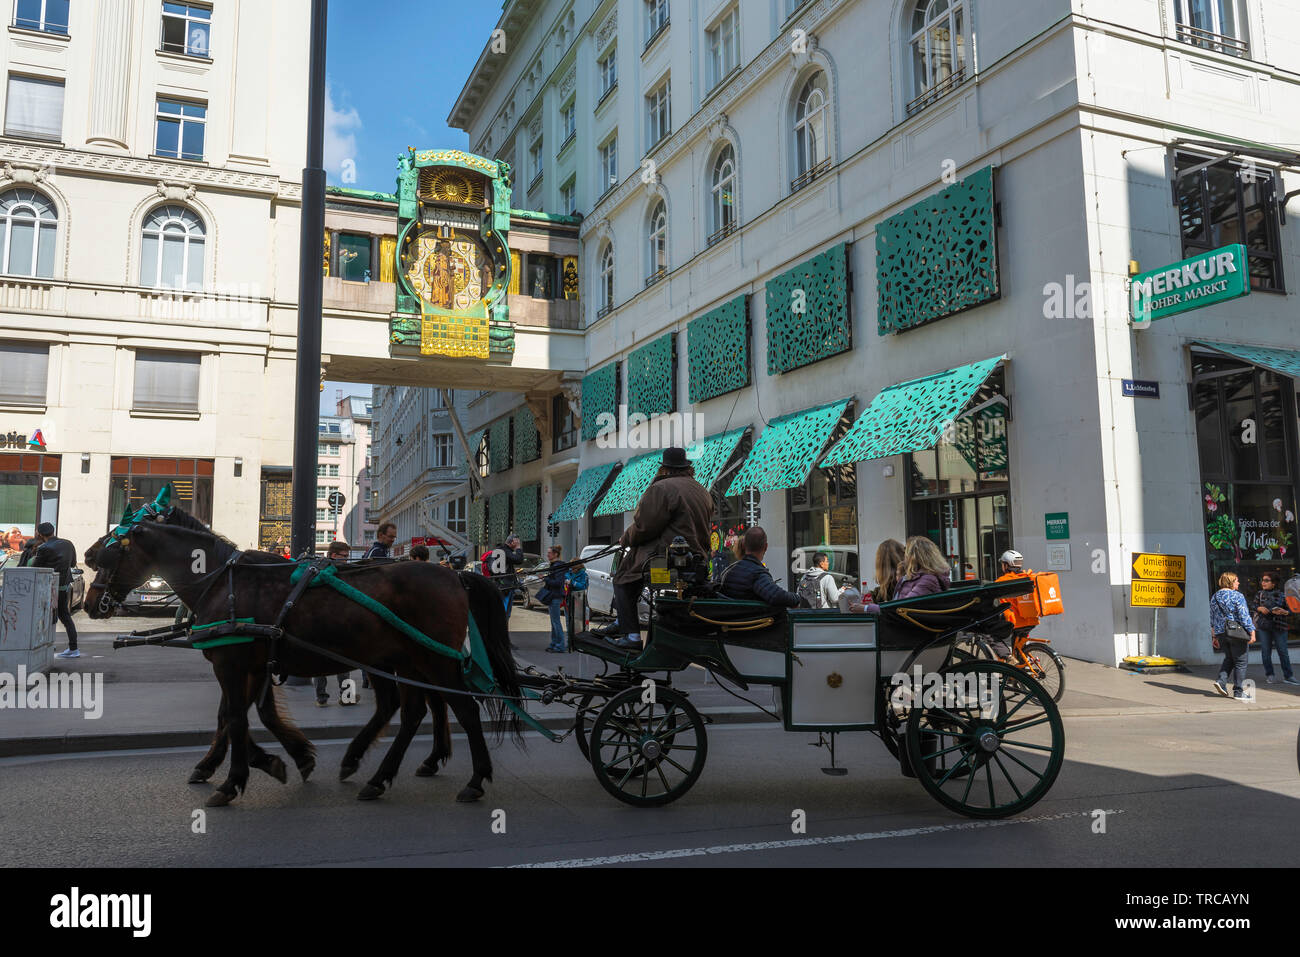 Vienna tourism, view of a horse drawn carriage containing tourists passing the Anker Clock in Hoher Markt in the Old Town area of Vienna, Austria. Stock Photo